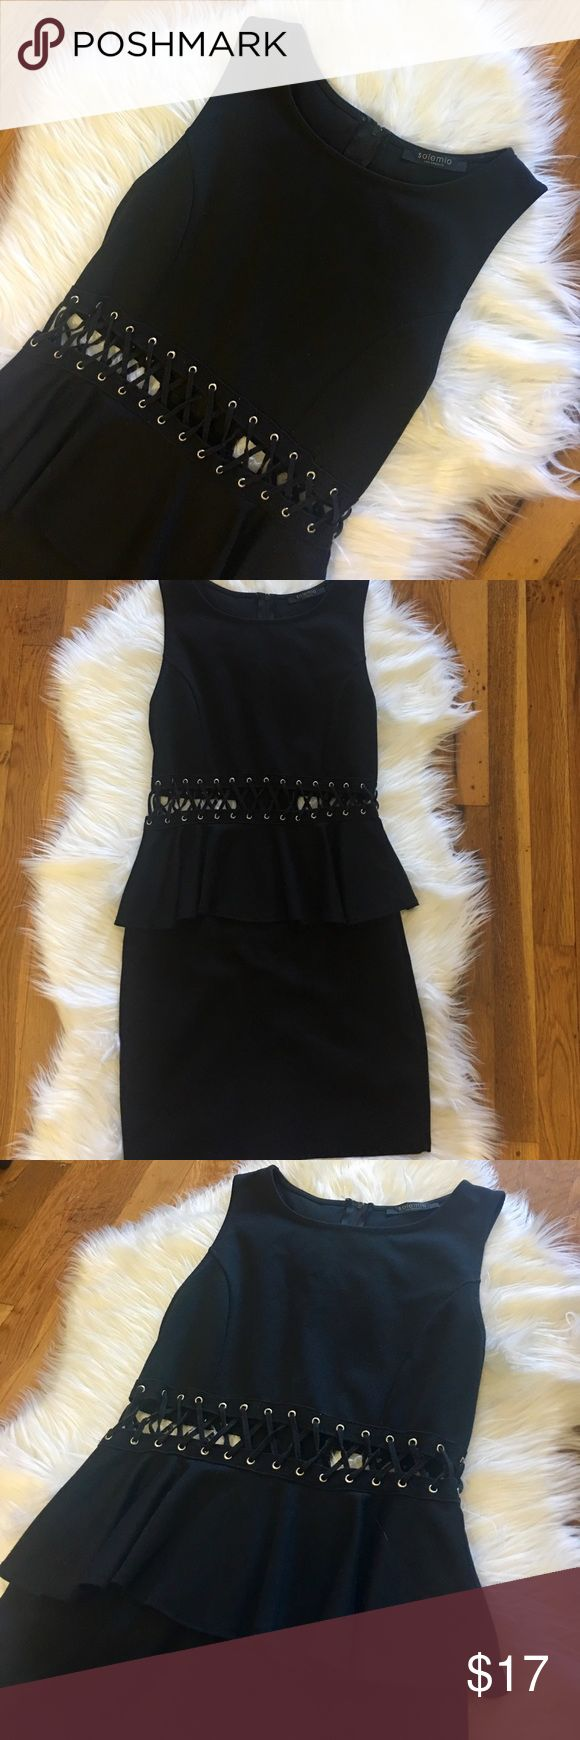 Black Peplum Dress Purchased from Nasty Gal a few years ago. Zips up the back. This was my GO TO lbd for a long time🖤🖤 worn but in fair condition. Nasty Gal Dresses Mini